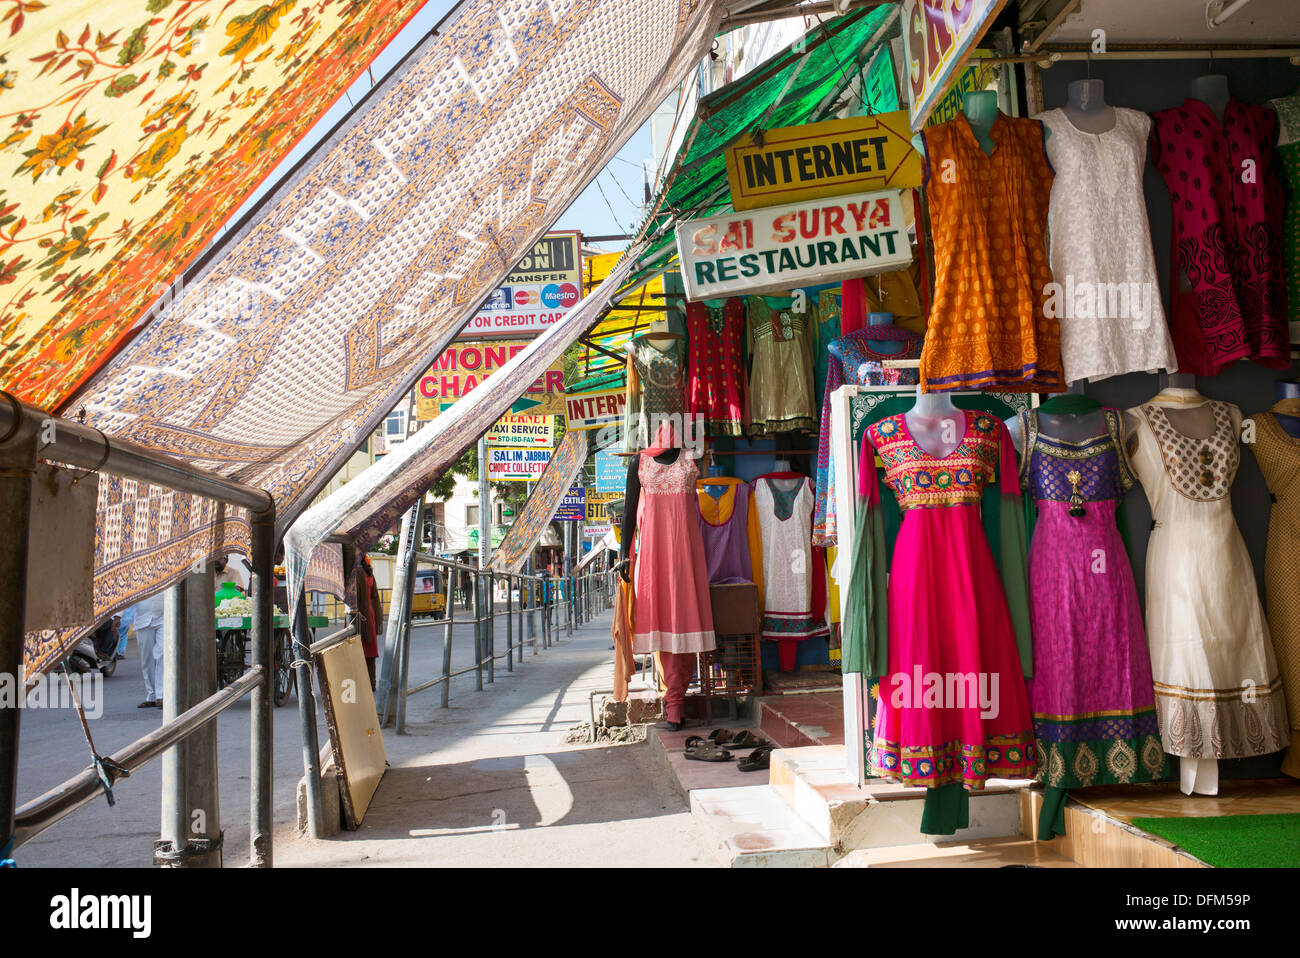 Puttaparthi high street shops protected from the sun by sheets. Andhra Pradesh, India - Stock Image